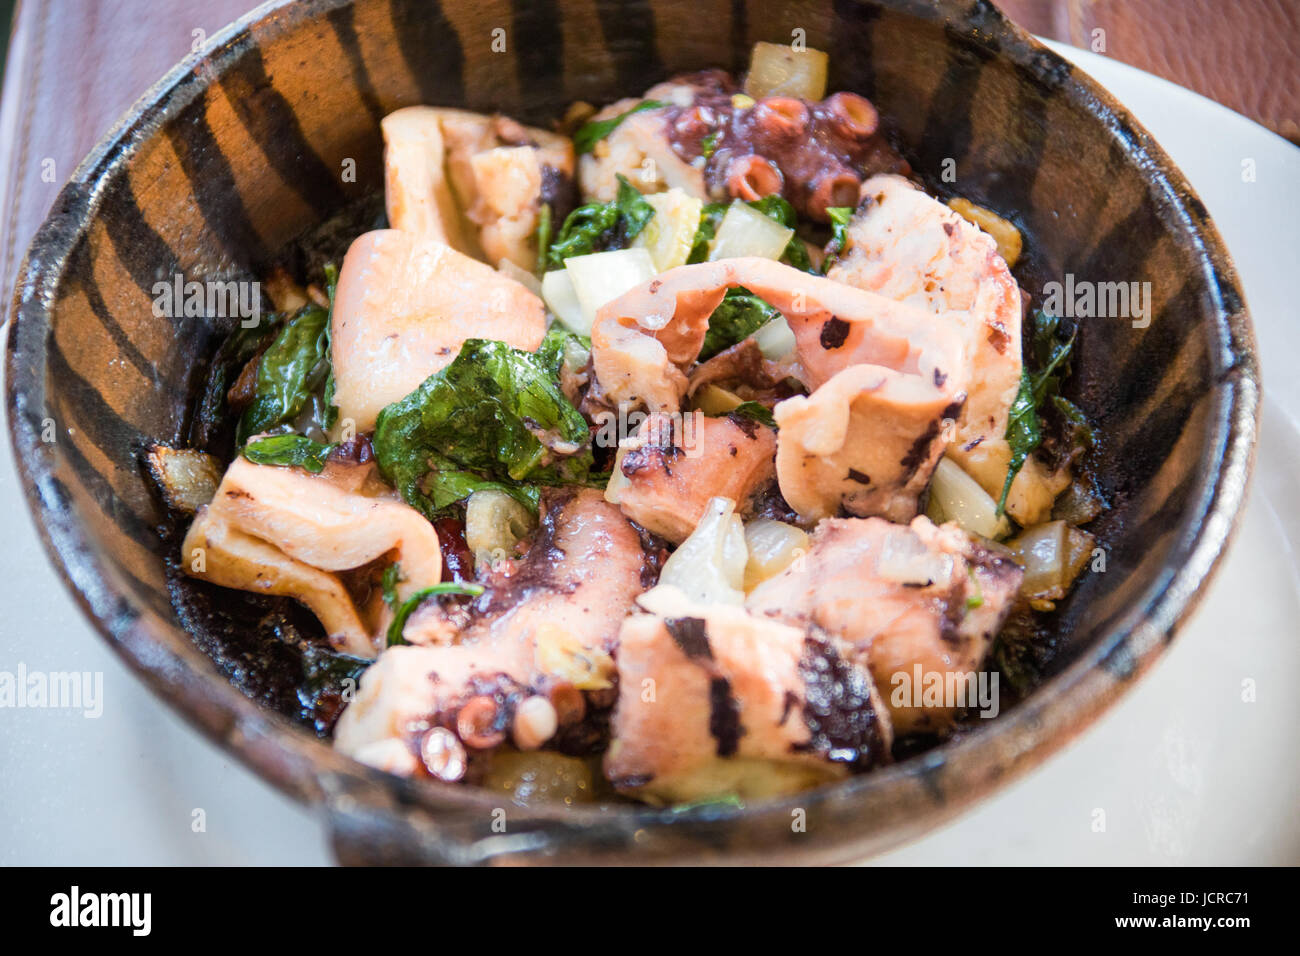 Octopus in oil, garlic, onions, and lemon, El Cardenal Restaurant, Mexico City, Mexico - Stock Image